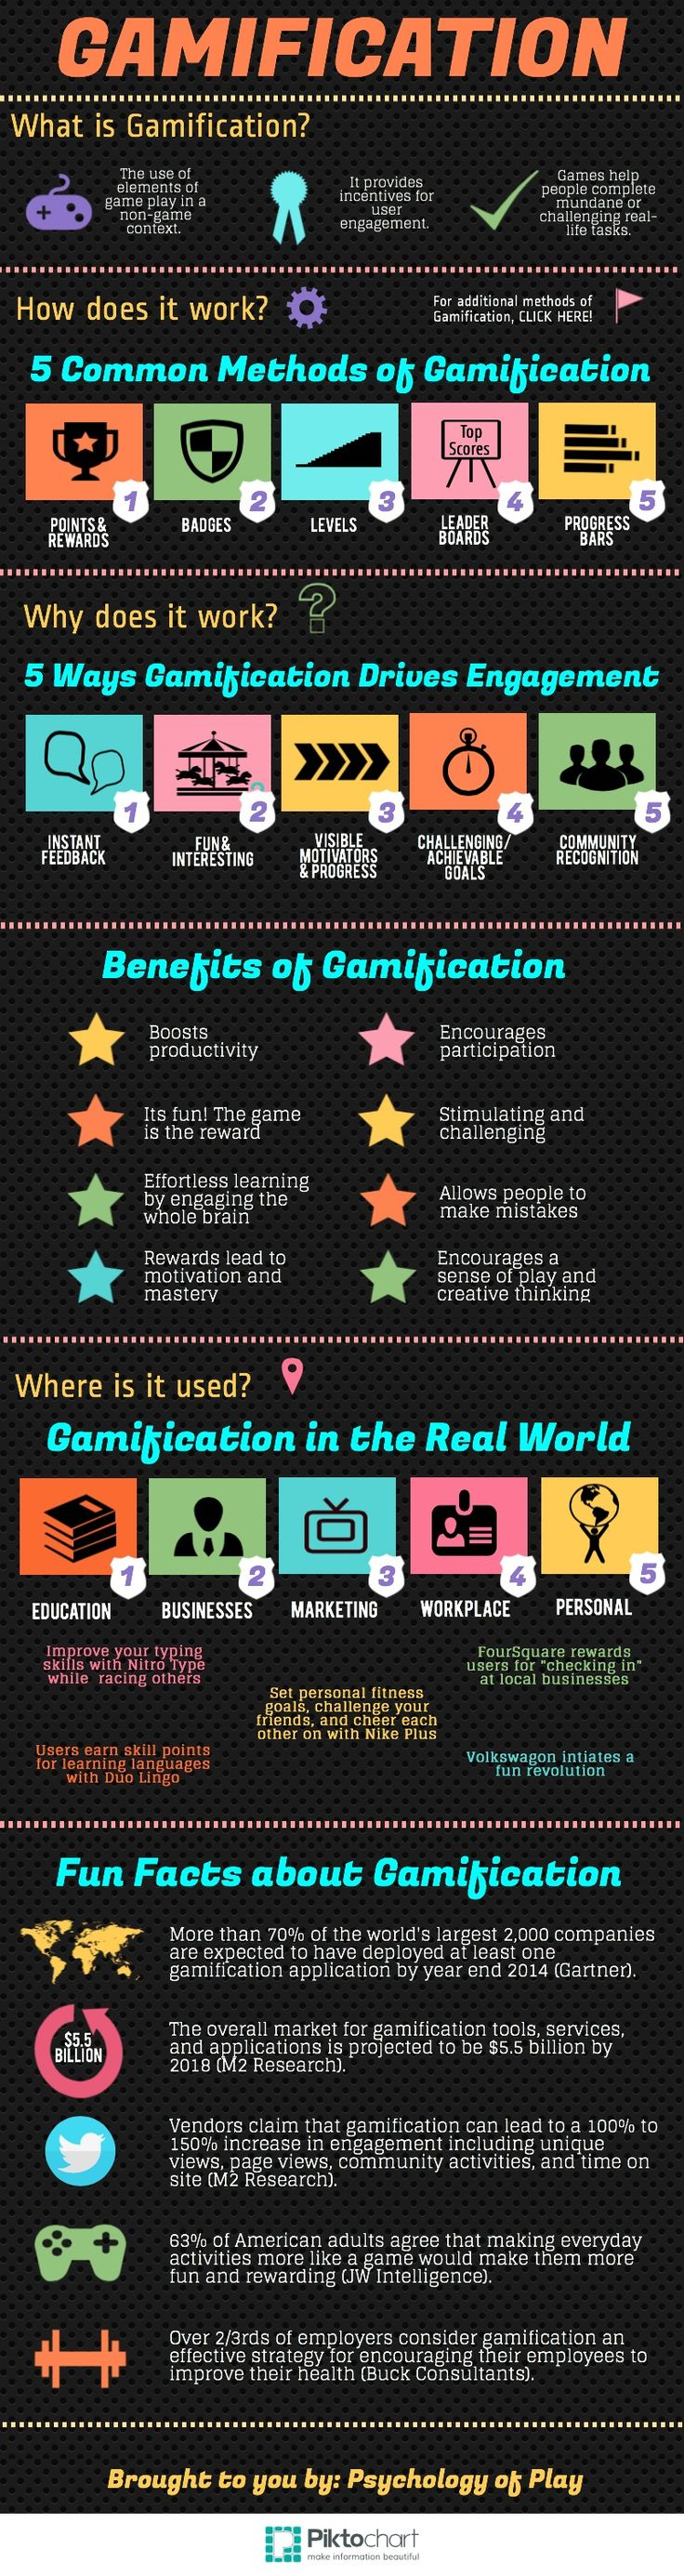 What is Gamification? Infographic #Gamification